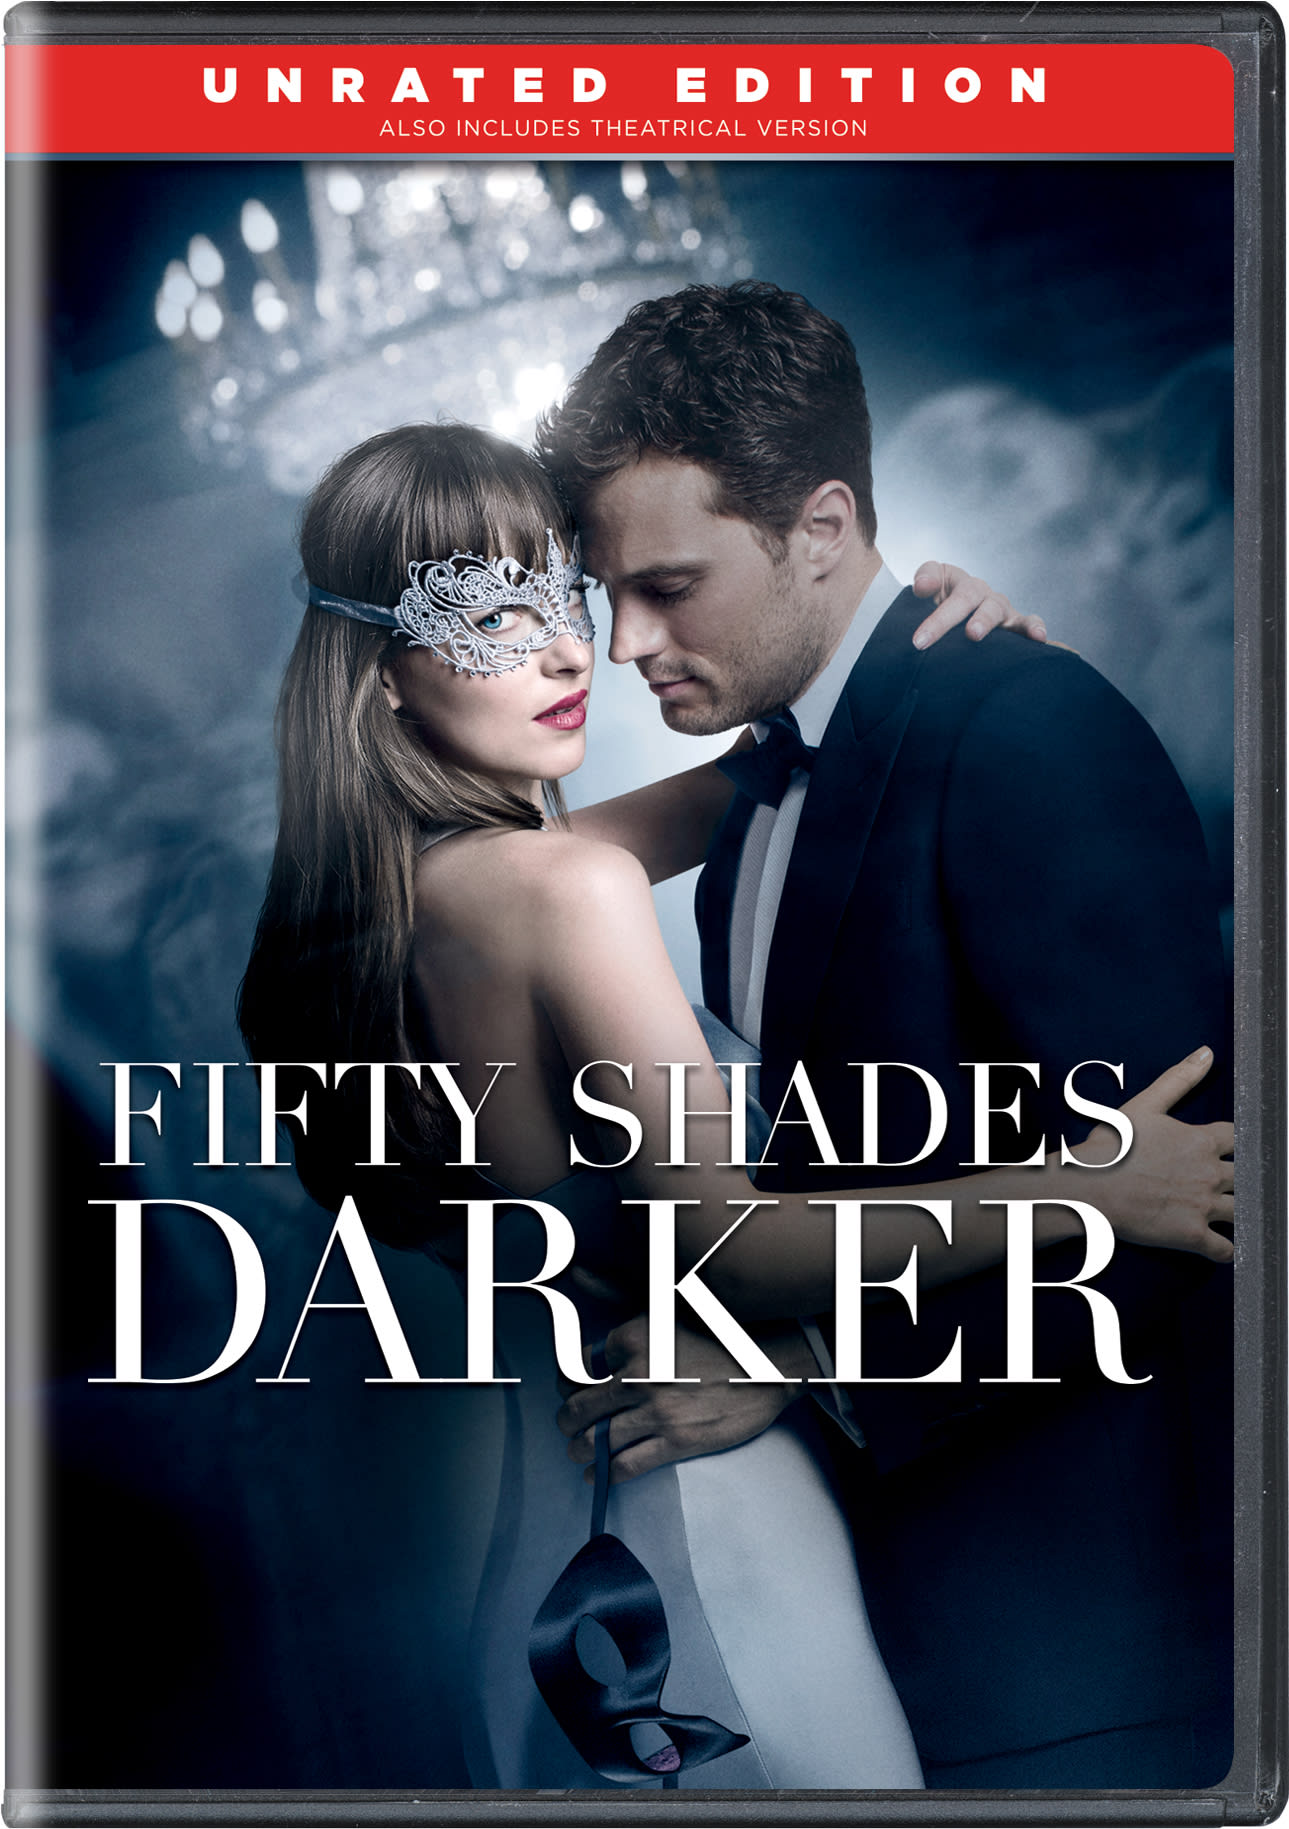 Fifty Shades Darker (Unrated Edition) [DVD]